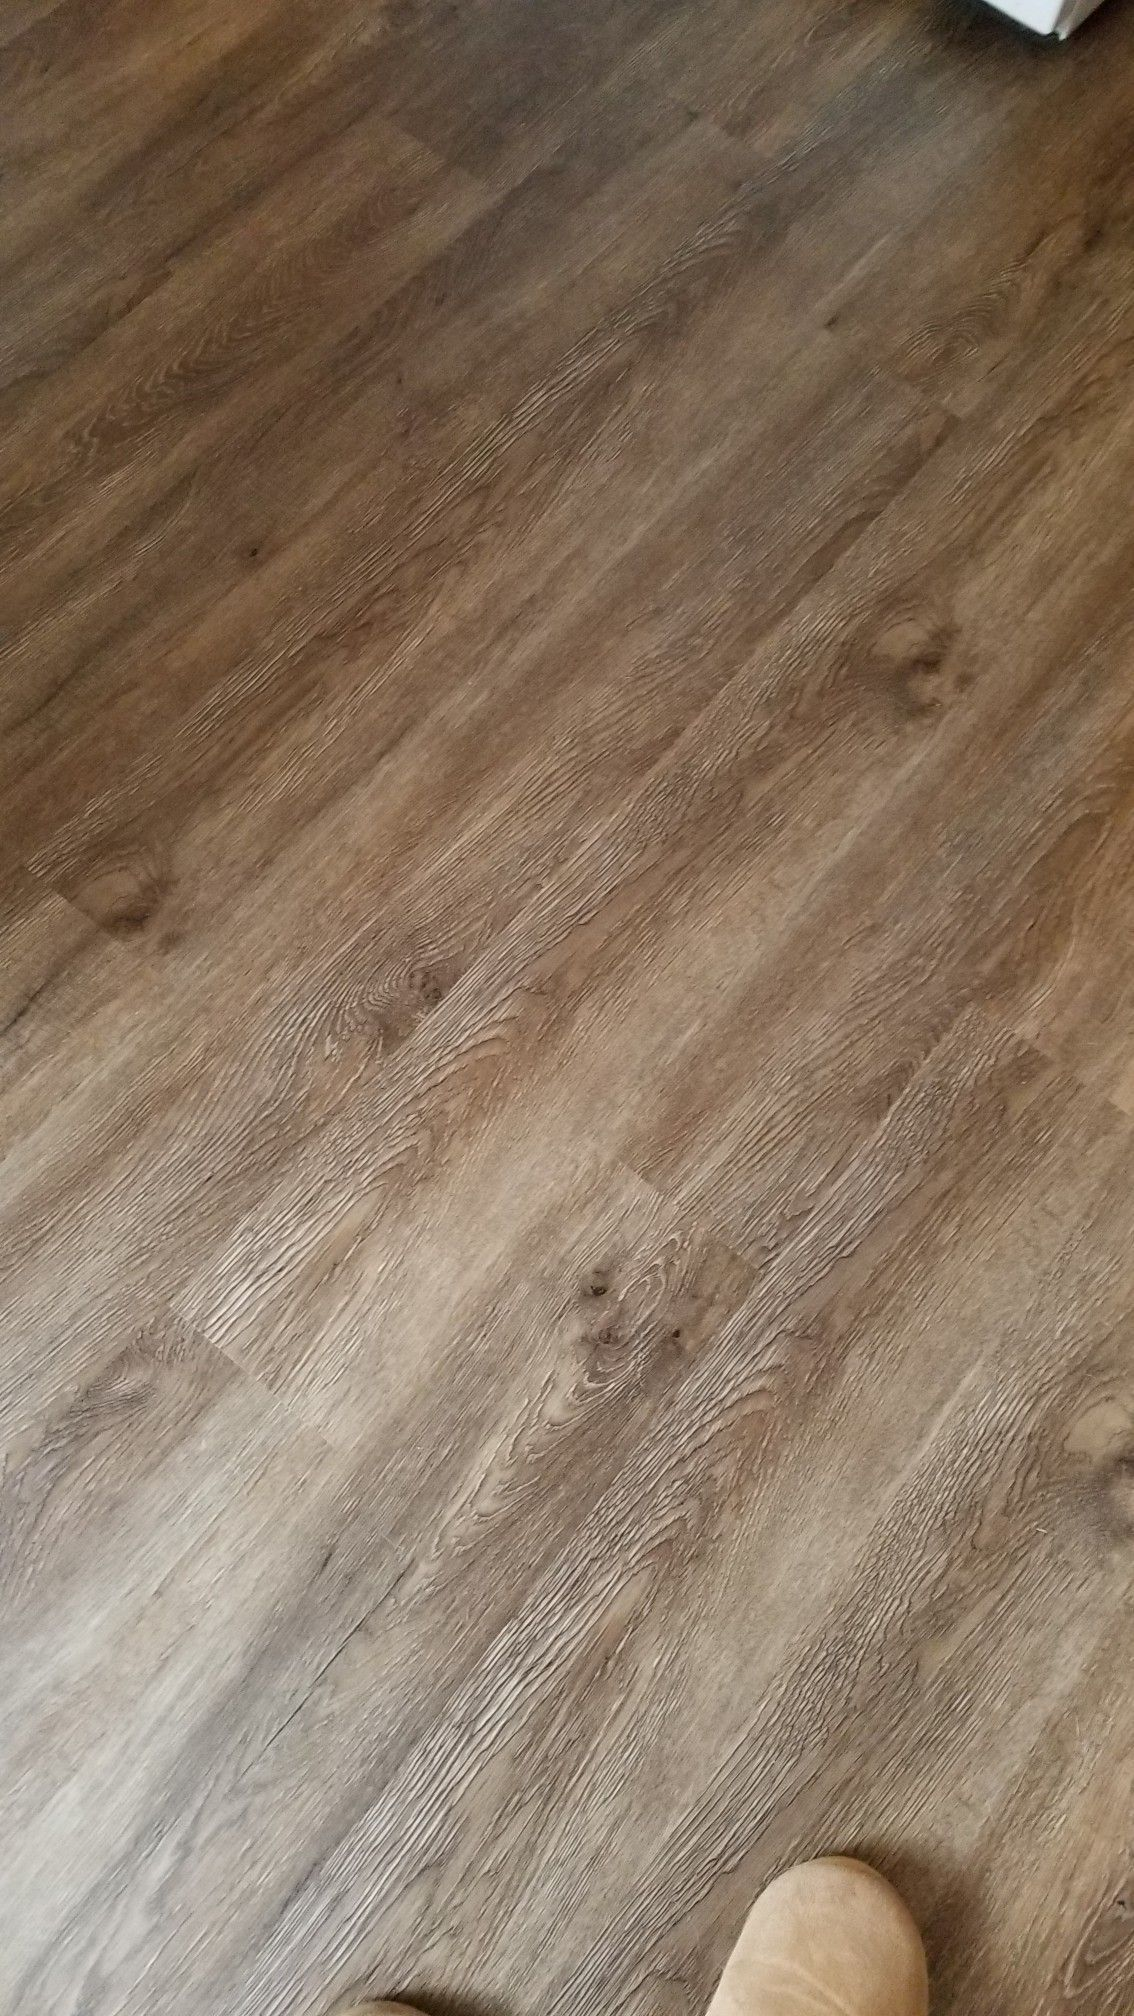 Beautiful Weathered Look With Warm And Cool Tones Vinyl Floor Lowes Durable Beautiful Cool Durable Fl In 2020 Vinyl Flooring Flooring Vinyl Plank Flooring